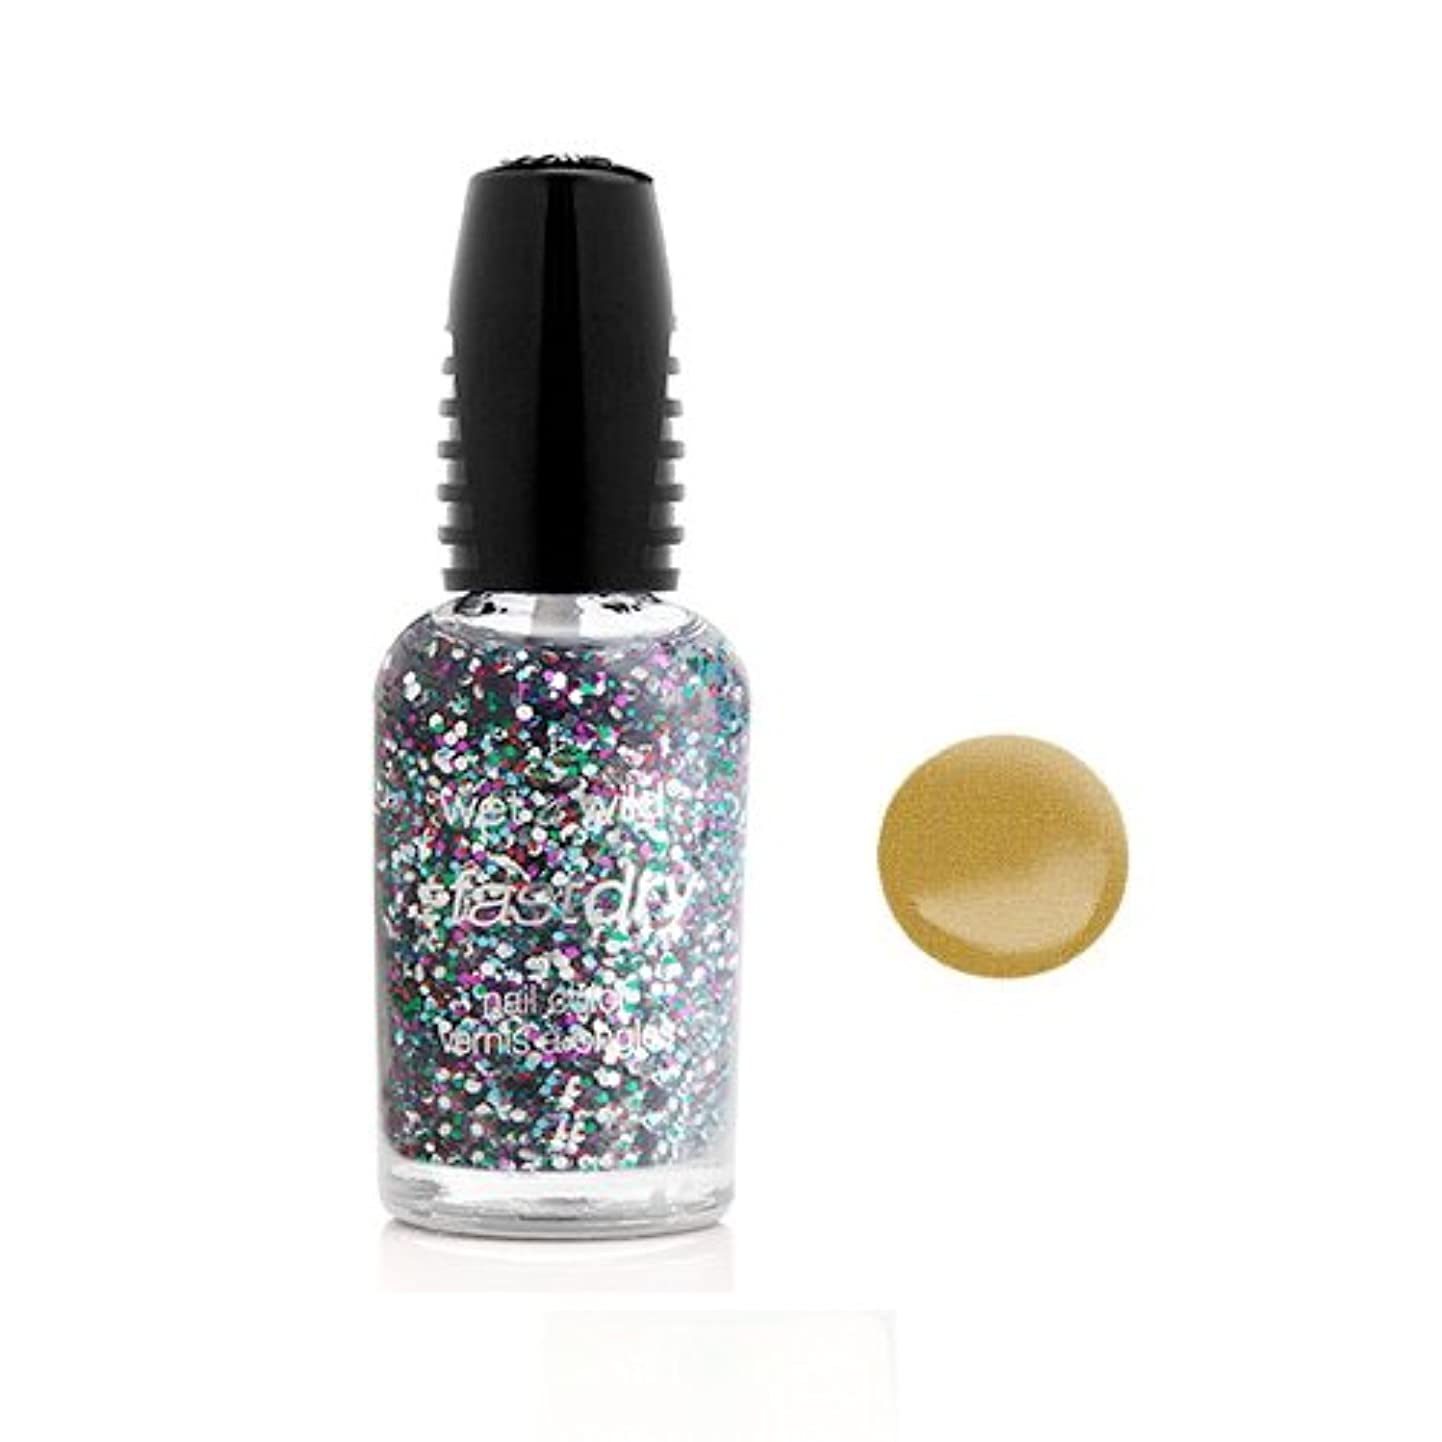 WET N WILD Fastdry Nail Color - The Gold & the Beautiful (並行輸入品)